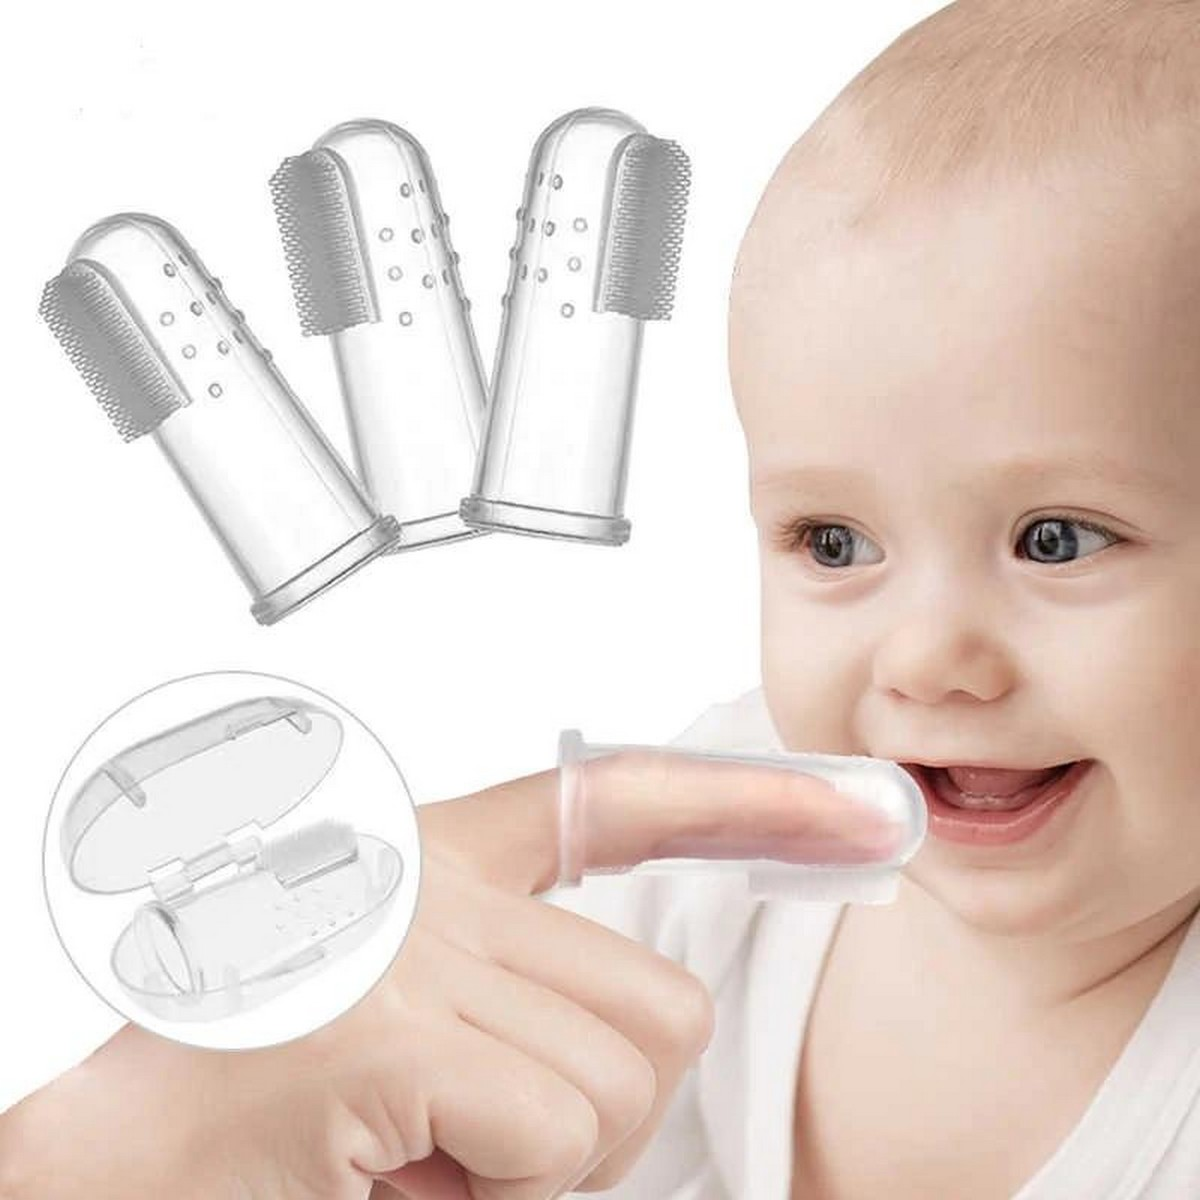 Baby Tongue Teeth Cleaning Hygienic & Flexible New Born Baby Soft Silicon Tounge Teeth Cleaner Finger Toothbrush